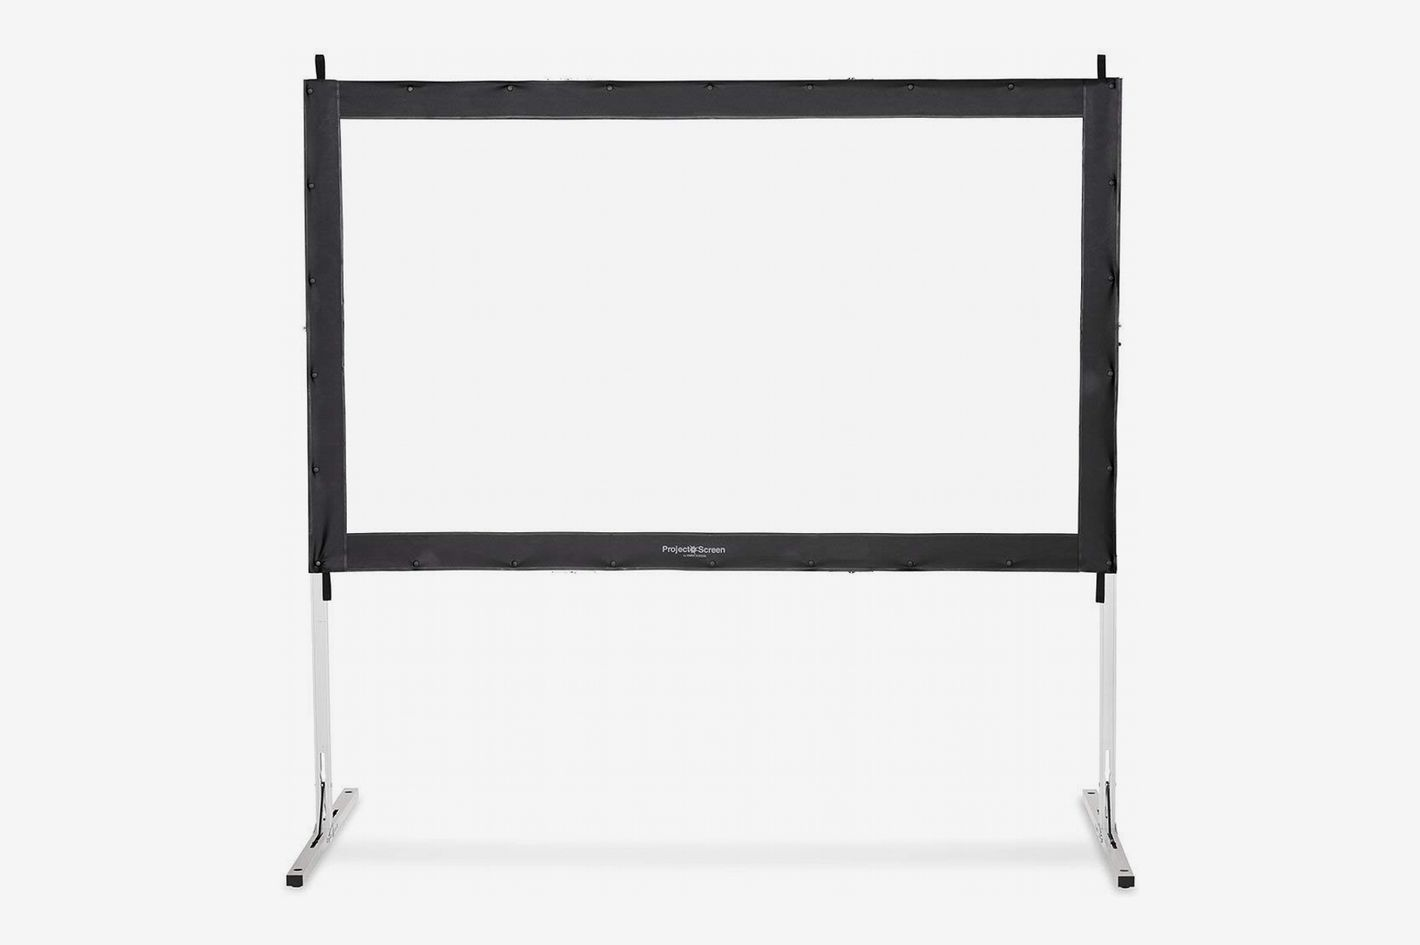 "Visual Apex Projector Screen 120"" 4K Portable Indoor/Outdoor Movie Theater Fast-Folding Projector Screen"